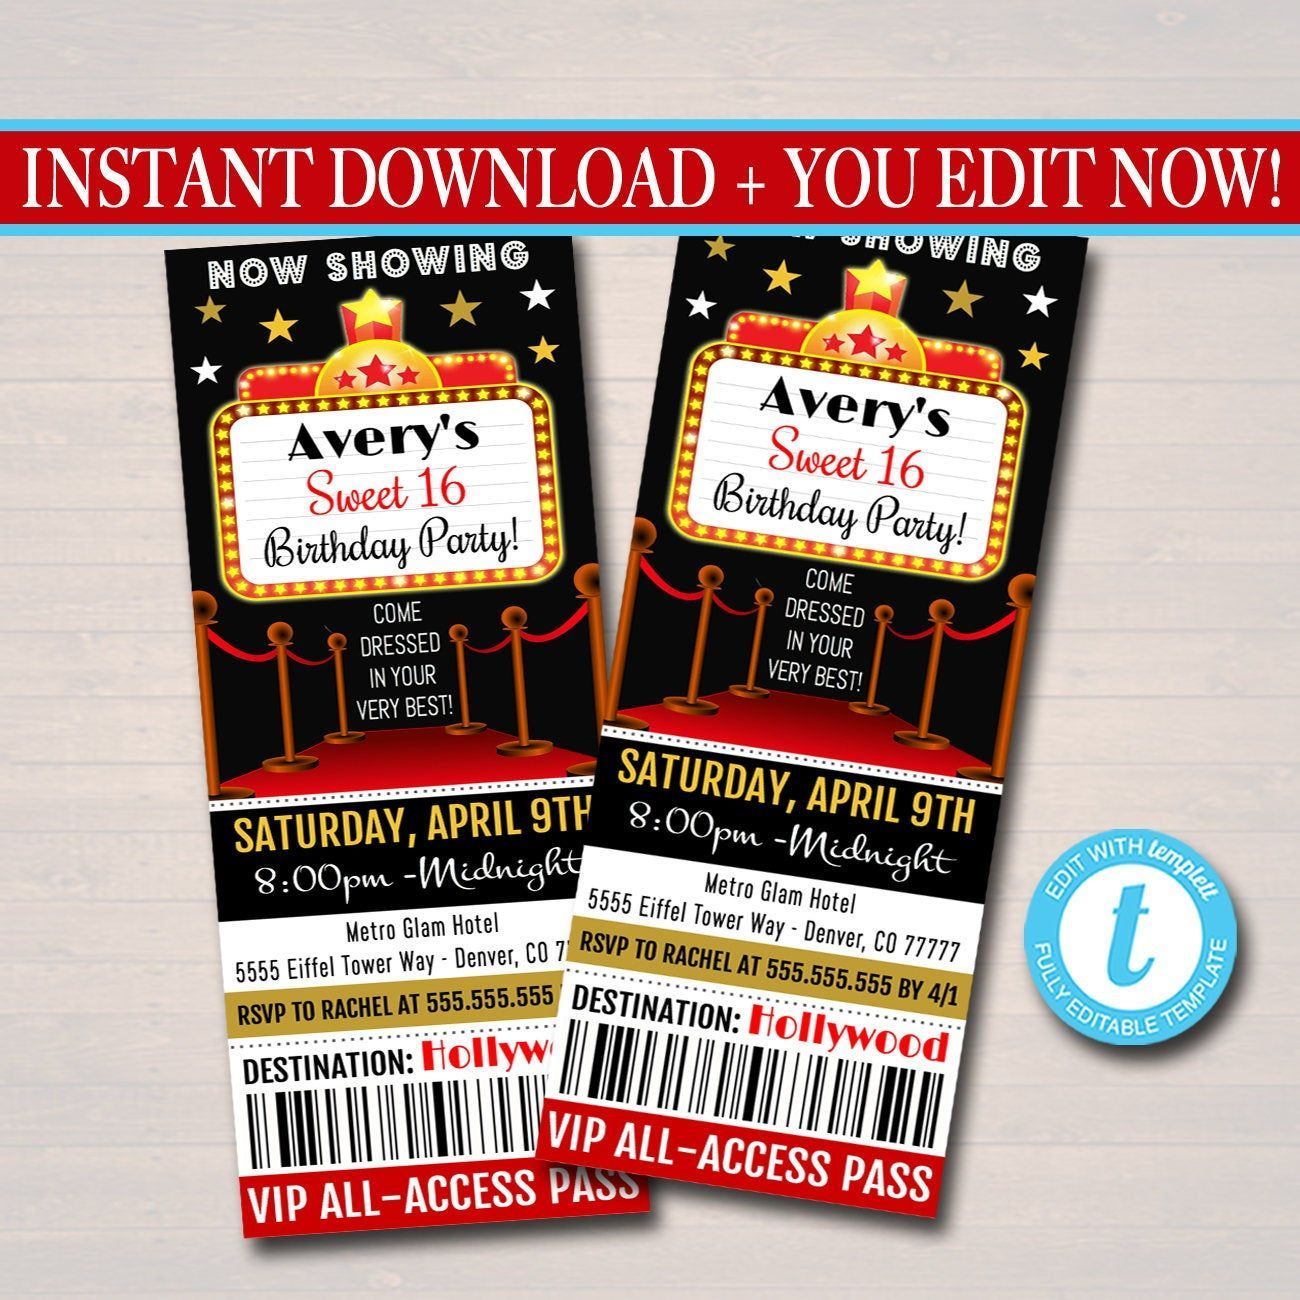 EDITABLE Red Carpet Ticket Invitation, Hollywood Movie Party Invite Glam Birthday Digital Invite, Red Carpet Party Invite INSTANT DOWNLOAD   #Birthday #Carpet #Digital #Download #EDITABLE #GLAM #Hollywood #Instant #Invitation #Invite #Movie #Party #Red #Ticket